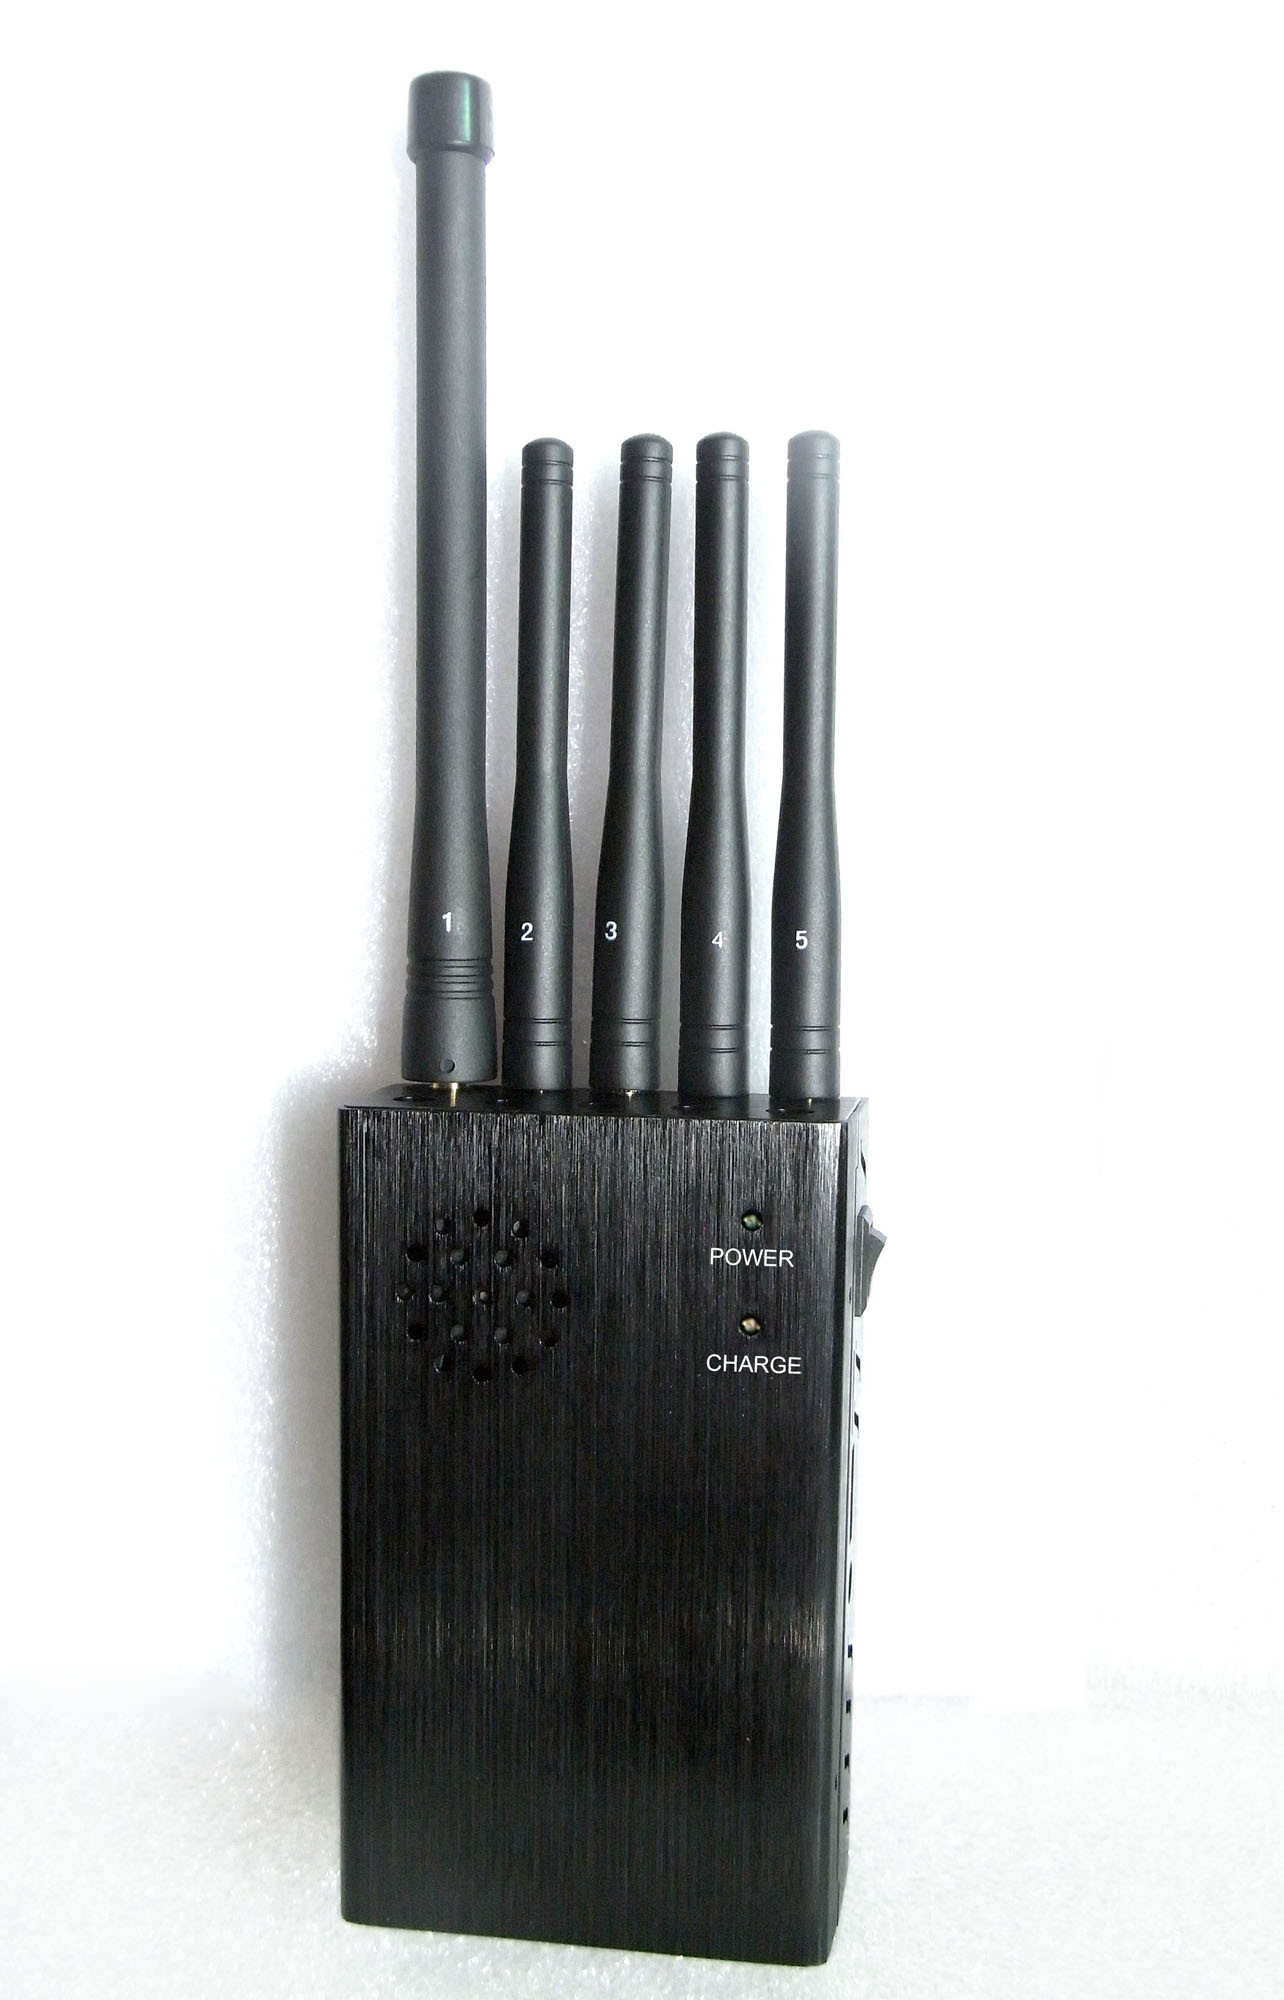 Gps jammer alibaba - China New Handheld 5 Bands 4G Lte 4G Wimax Cell Phone Jammer 4G Jammer 3G Jammer, 5 Antennas Phone Jammer for GSM, CDMA, 3G, 4glte - China 5 Band Signal Blockers, Five Antennas Jammers